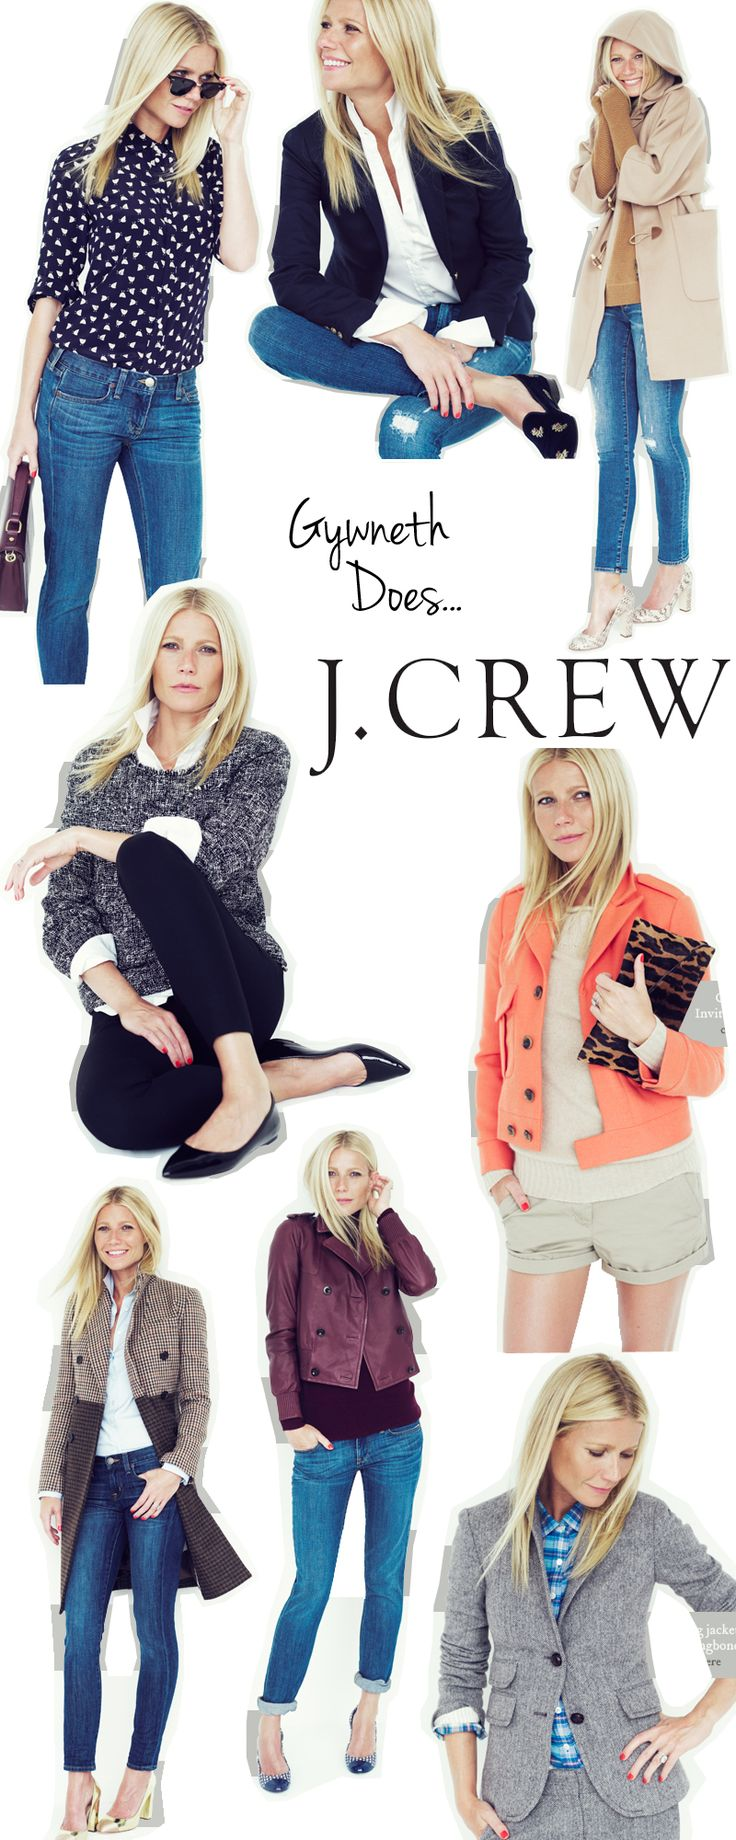 Fashion Style Combinations - Gwyneth does J. Crew